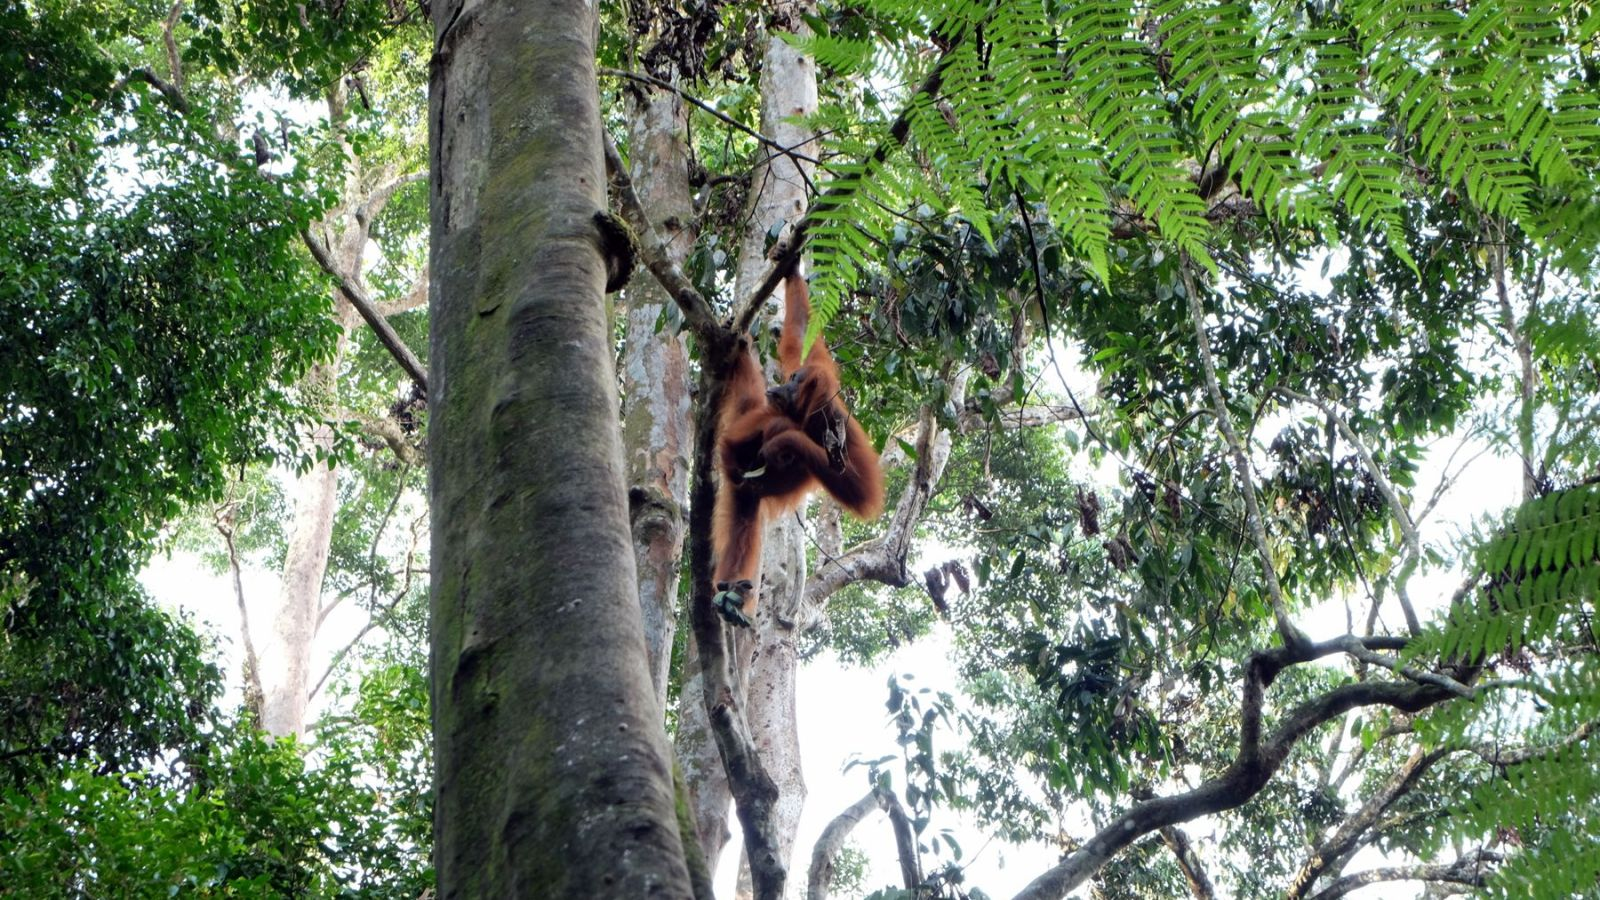 a photo of a orang utan hanging in a tree in bukit lawang.